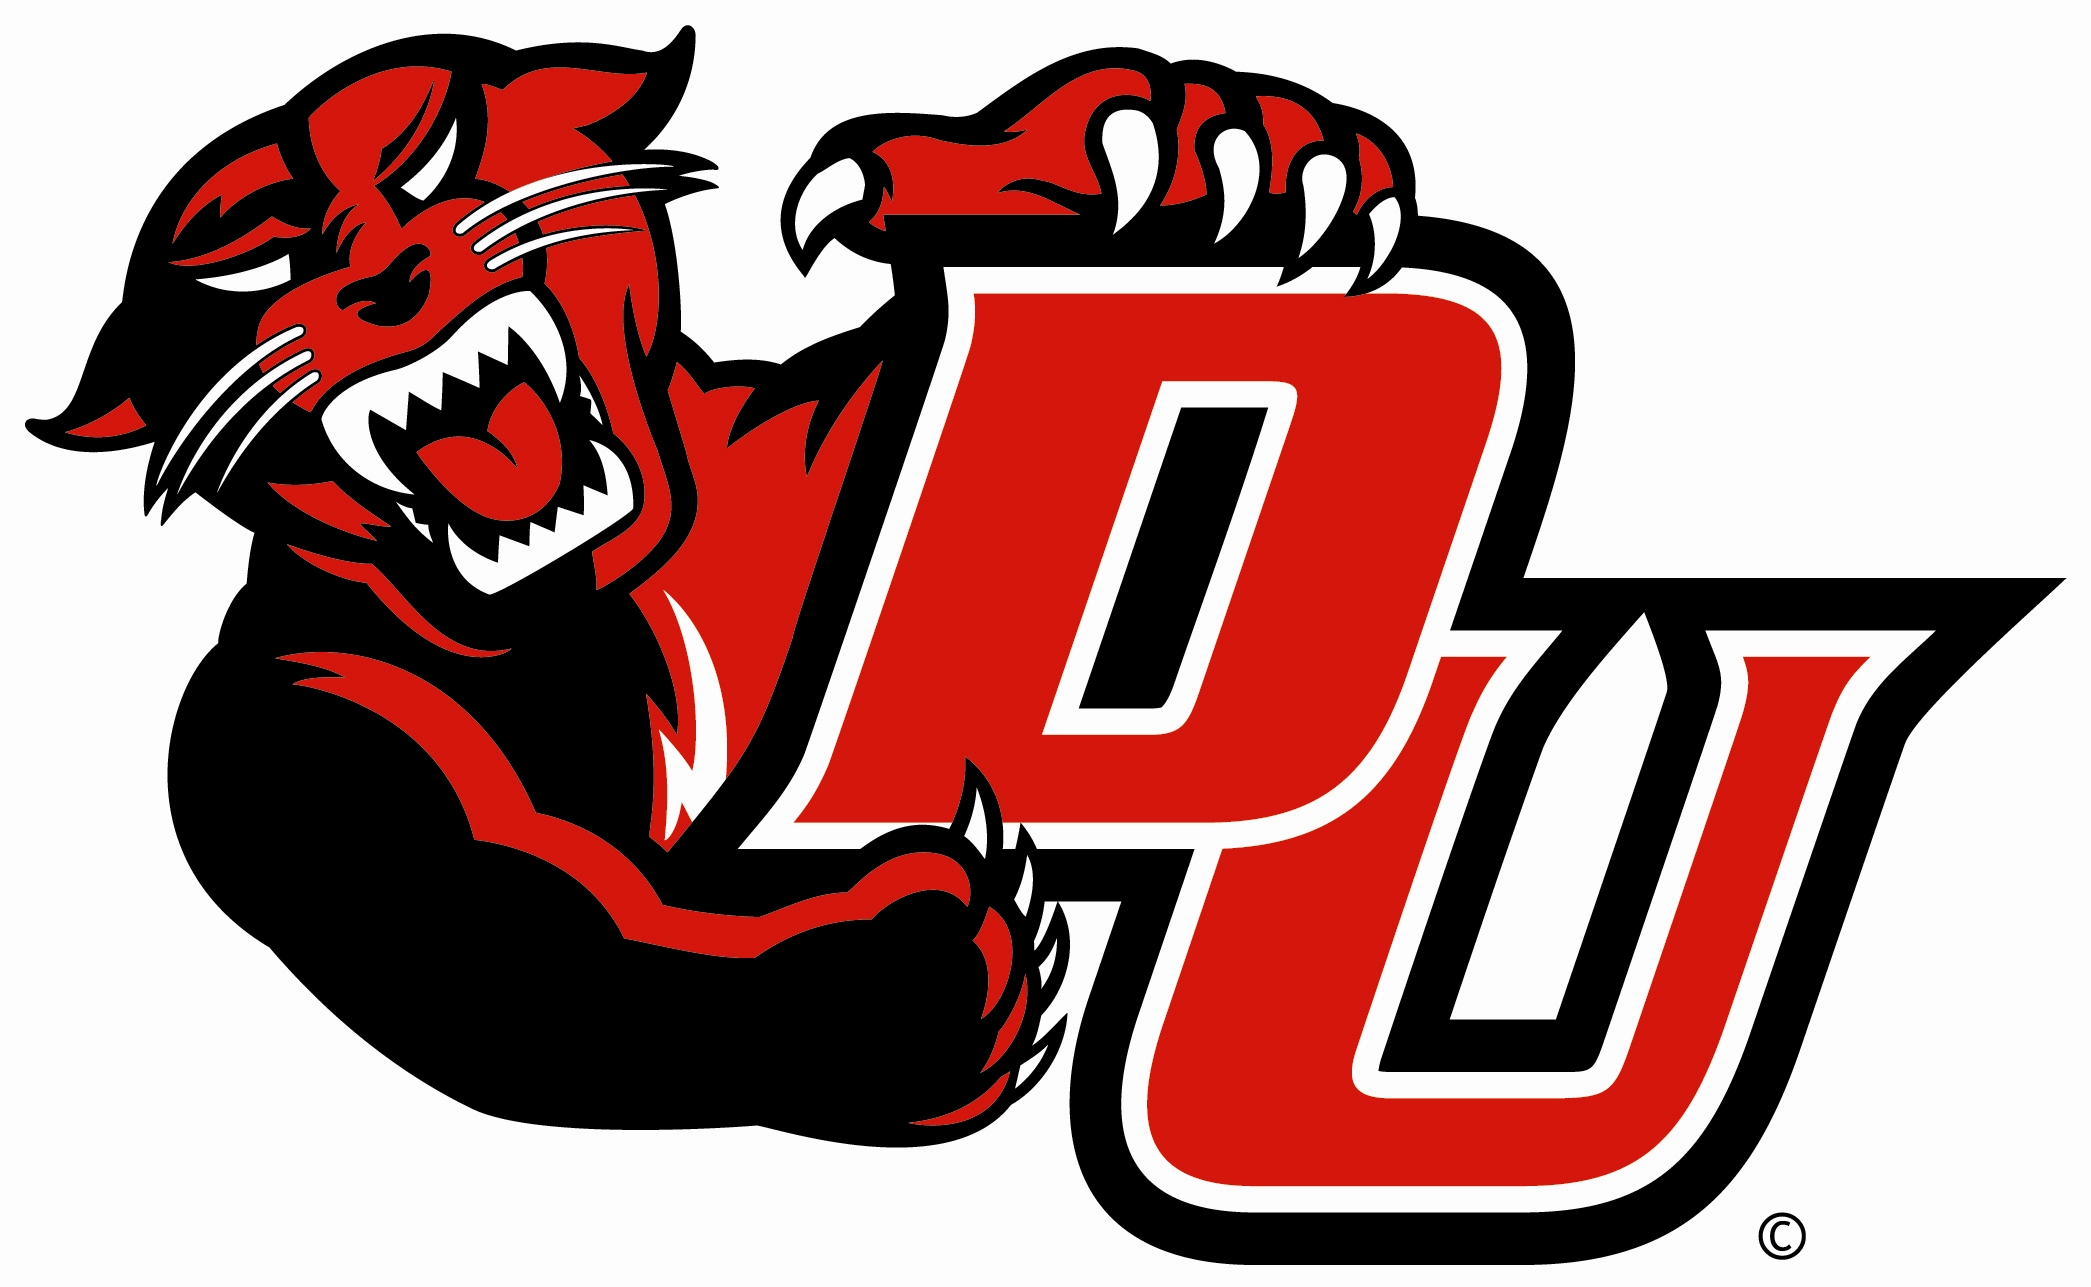 davenport-panthers-secondary-logo-a.jpg